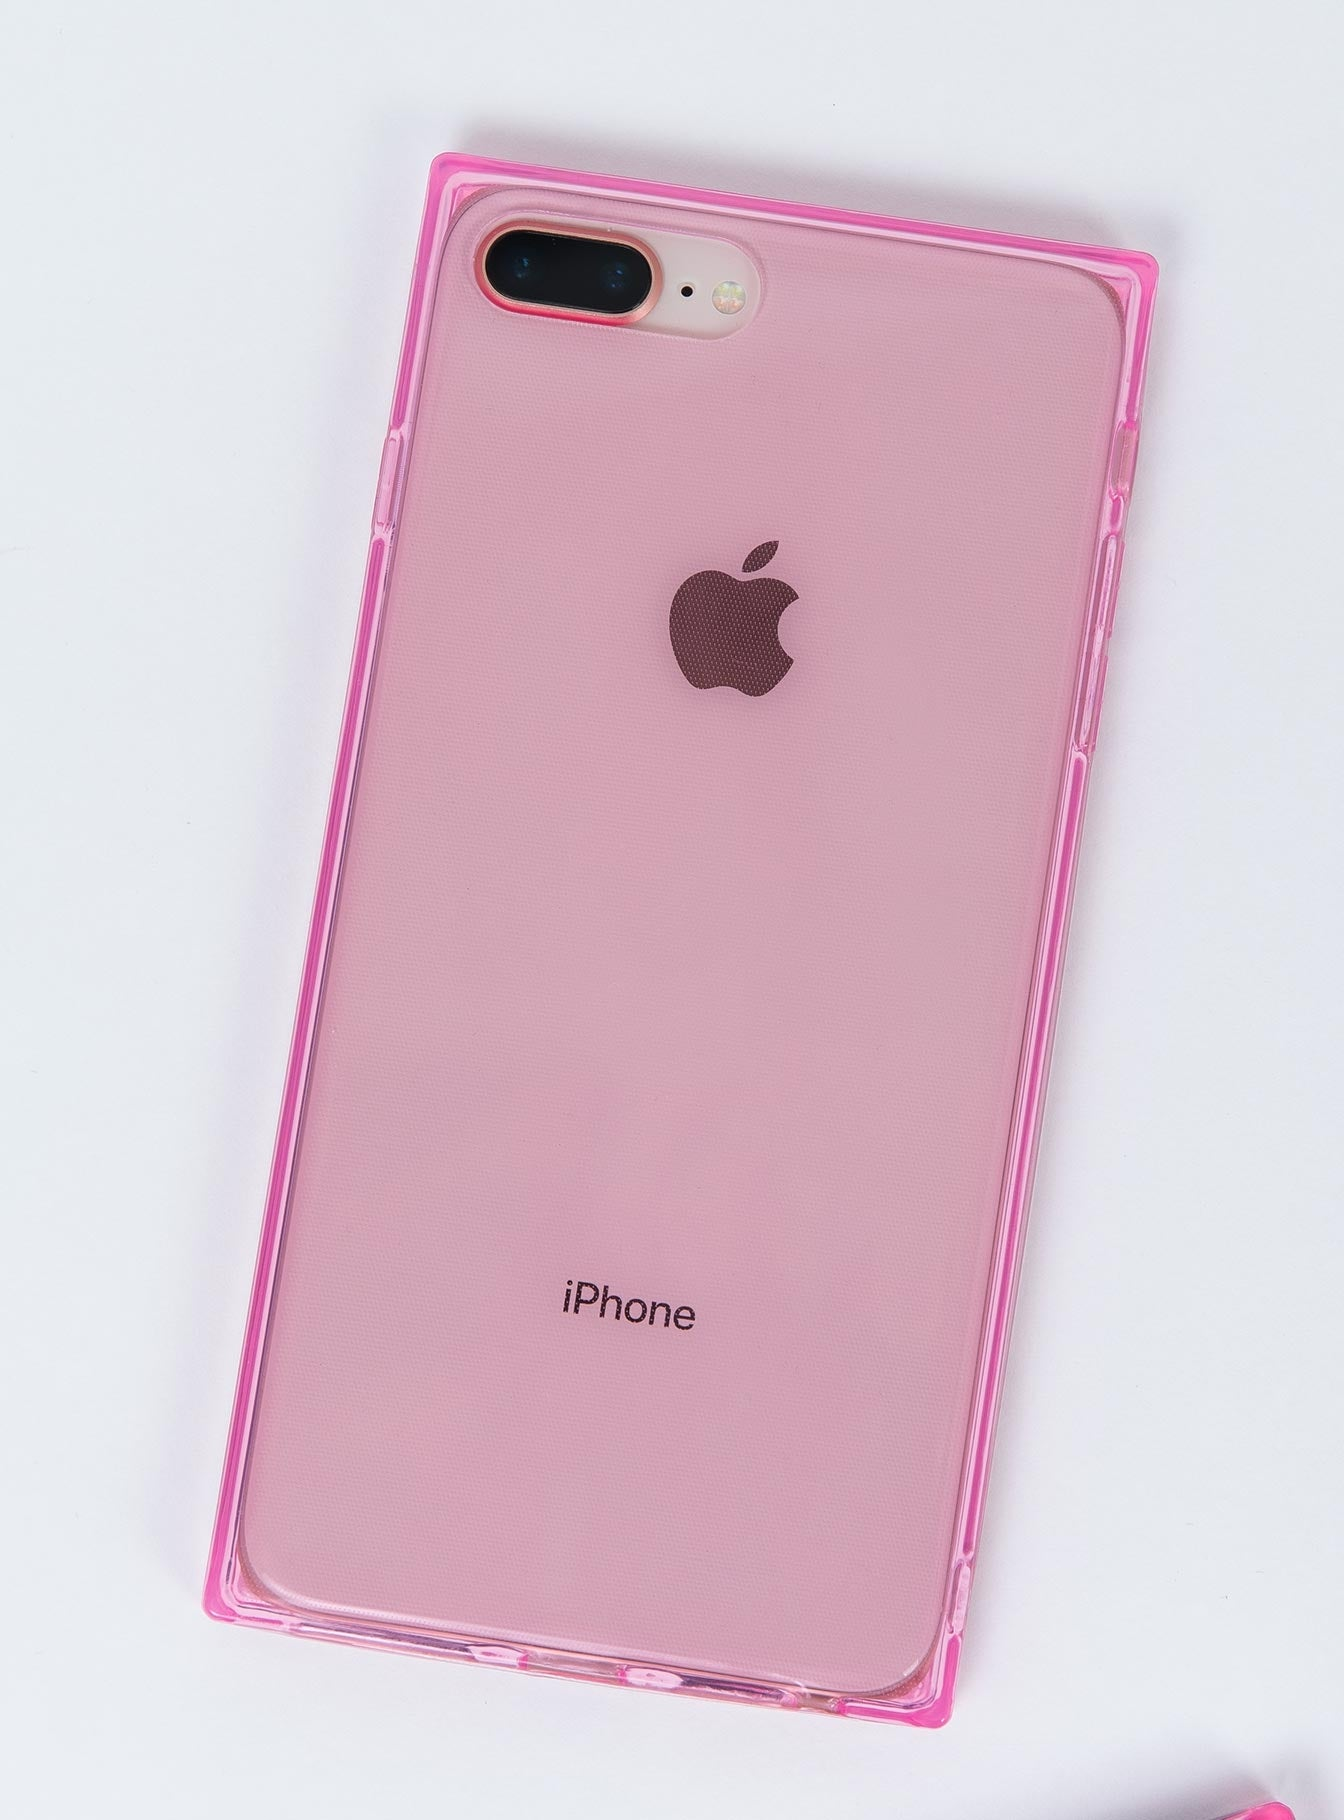 Transparent Square iPhone Case Pink